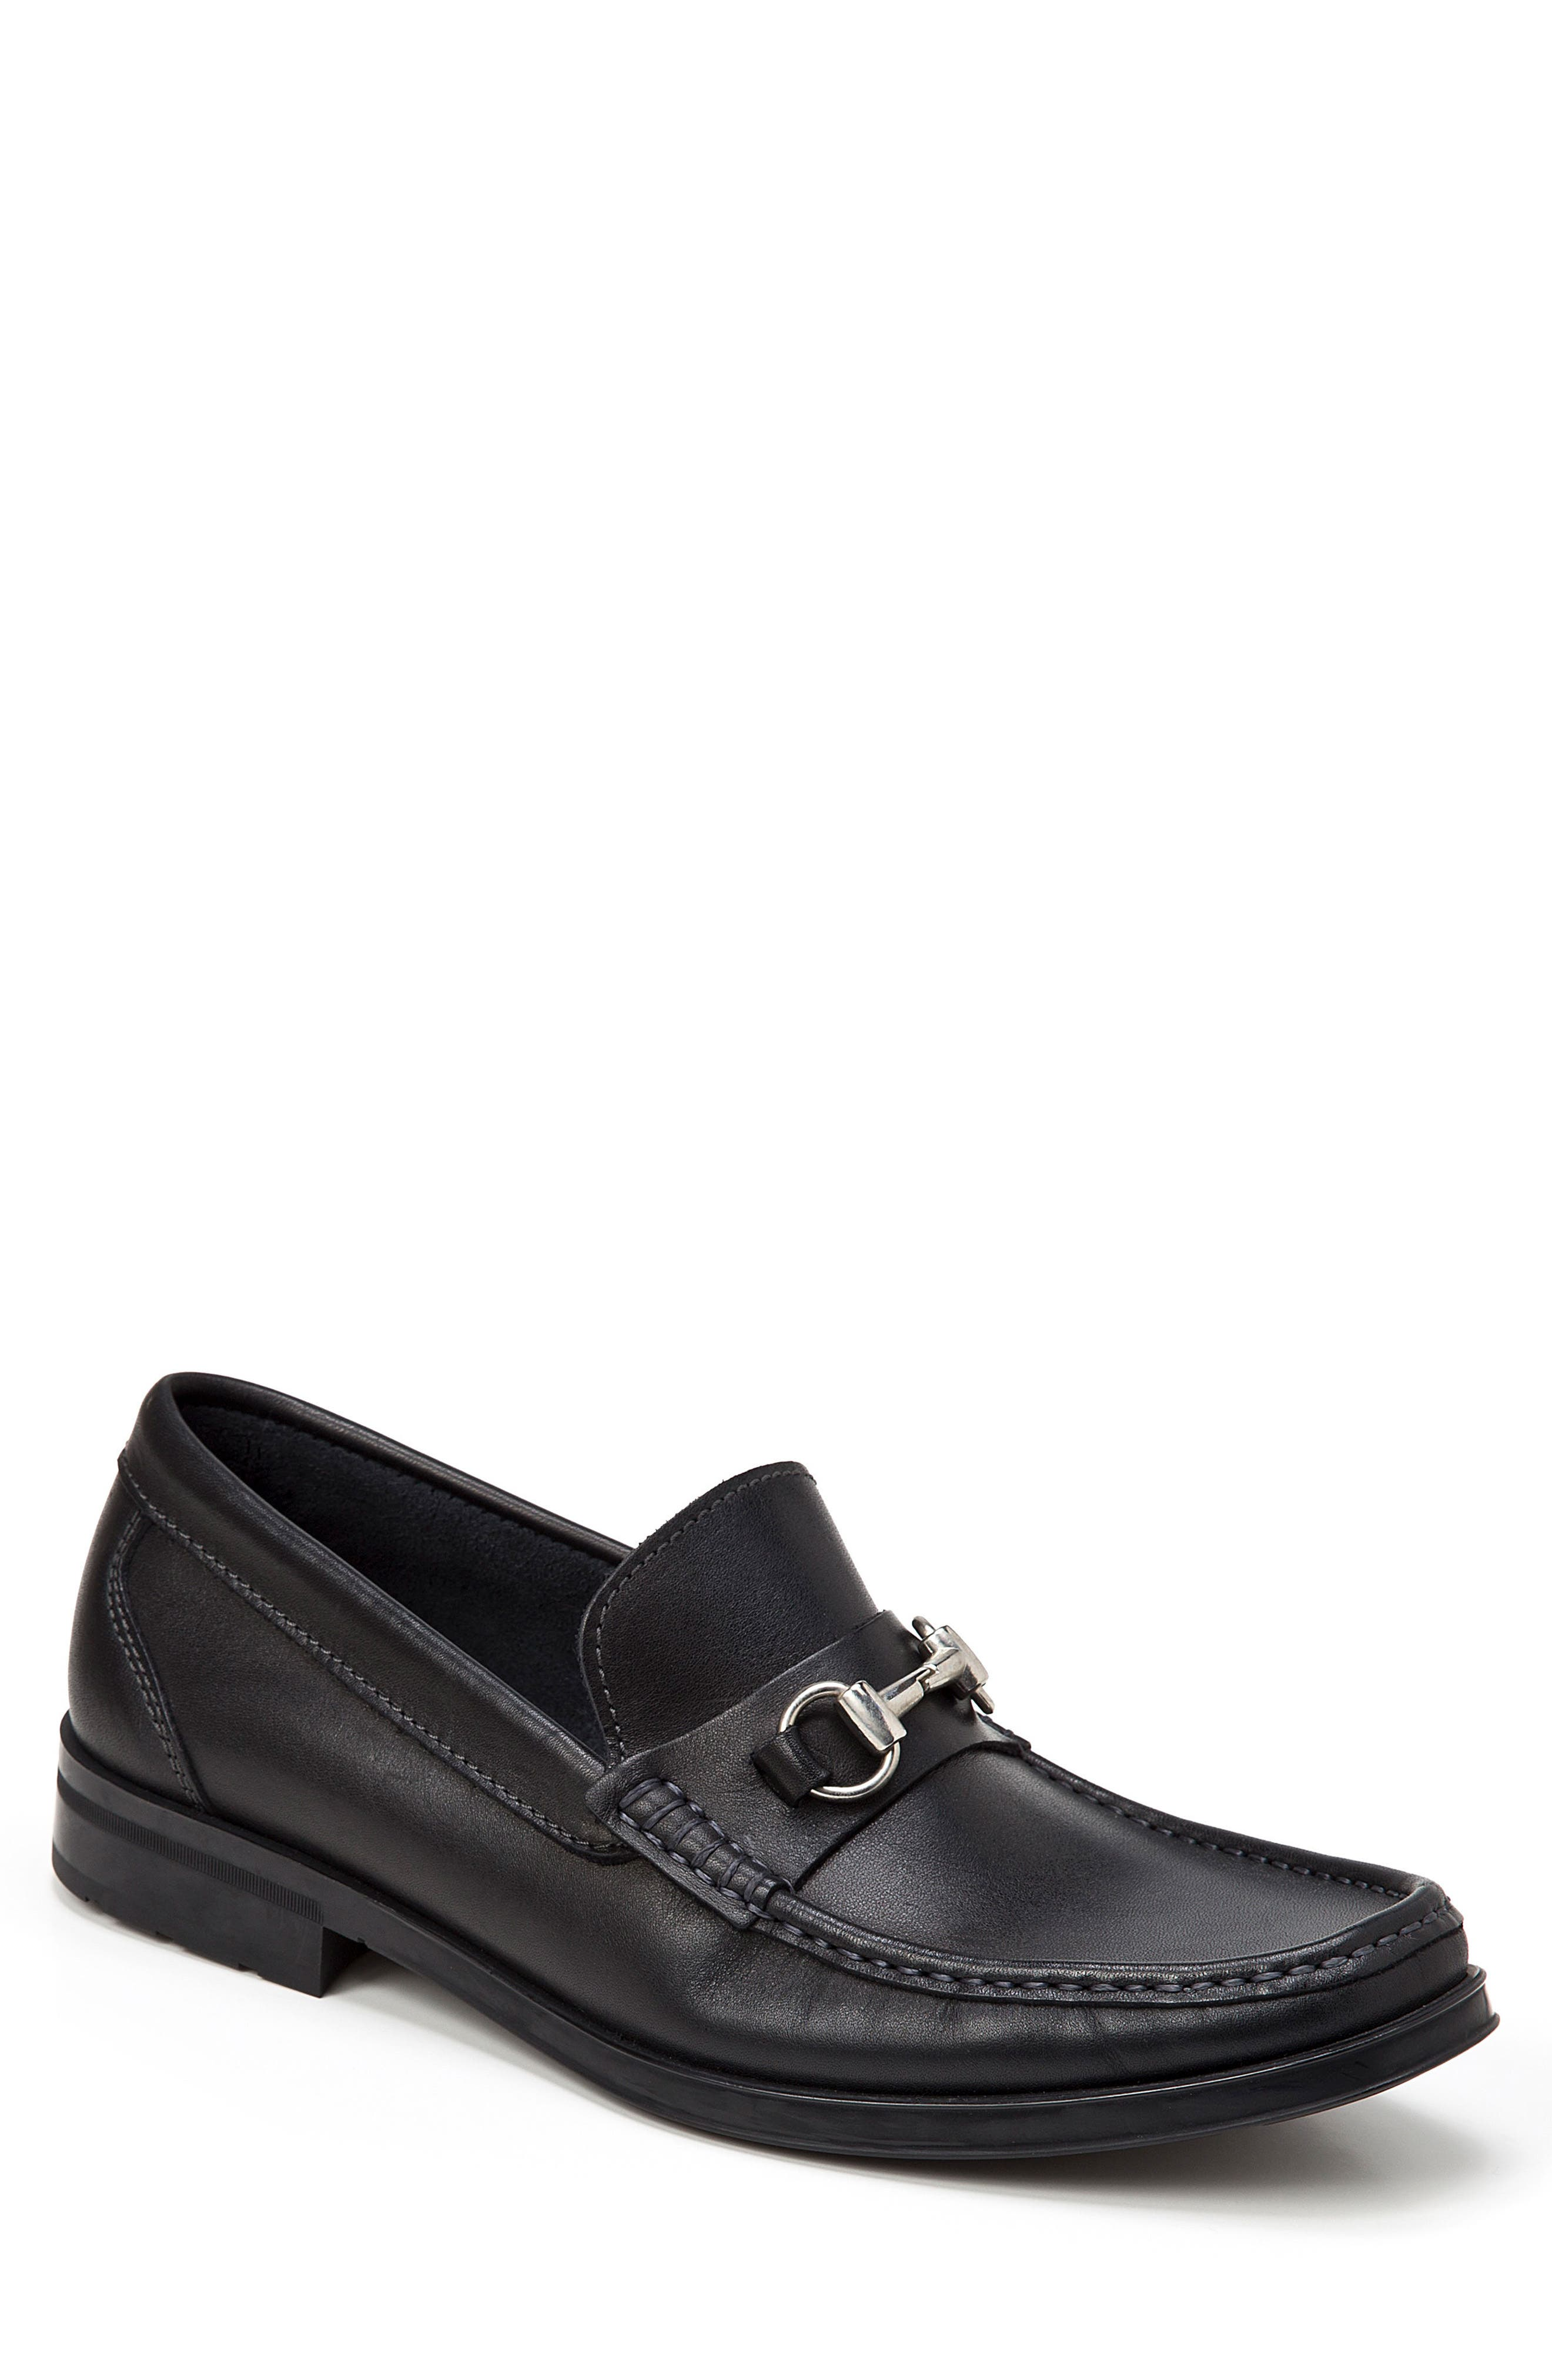 Ernesto Bit Loafer,                         Main,                         color, 001